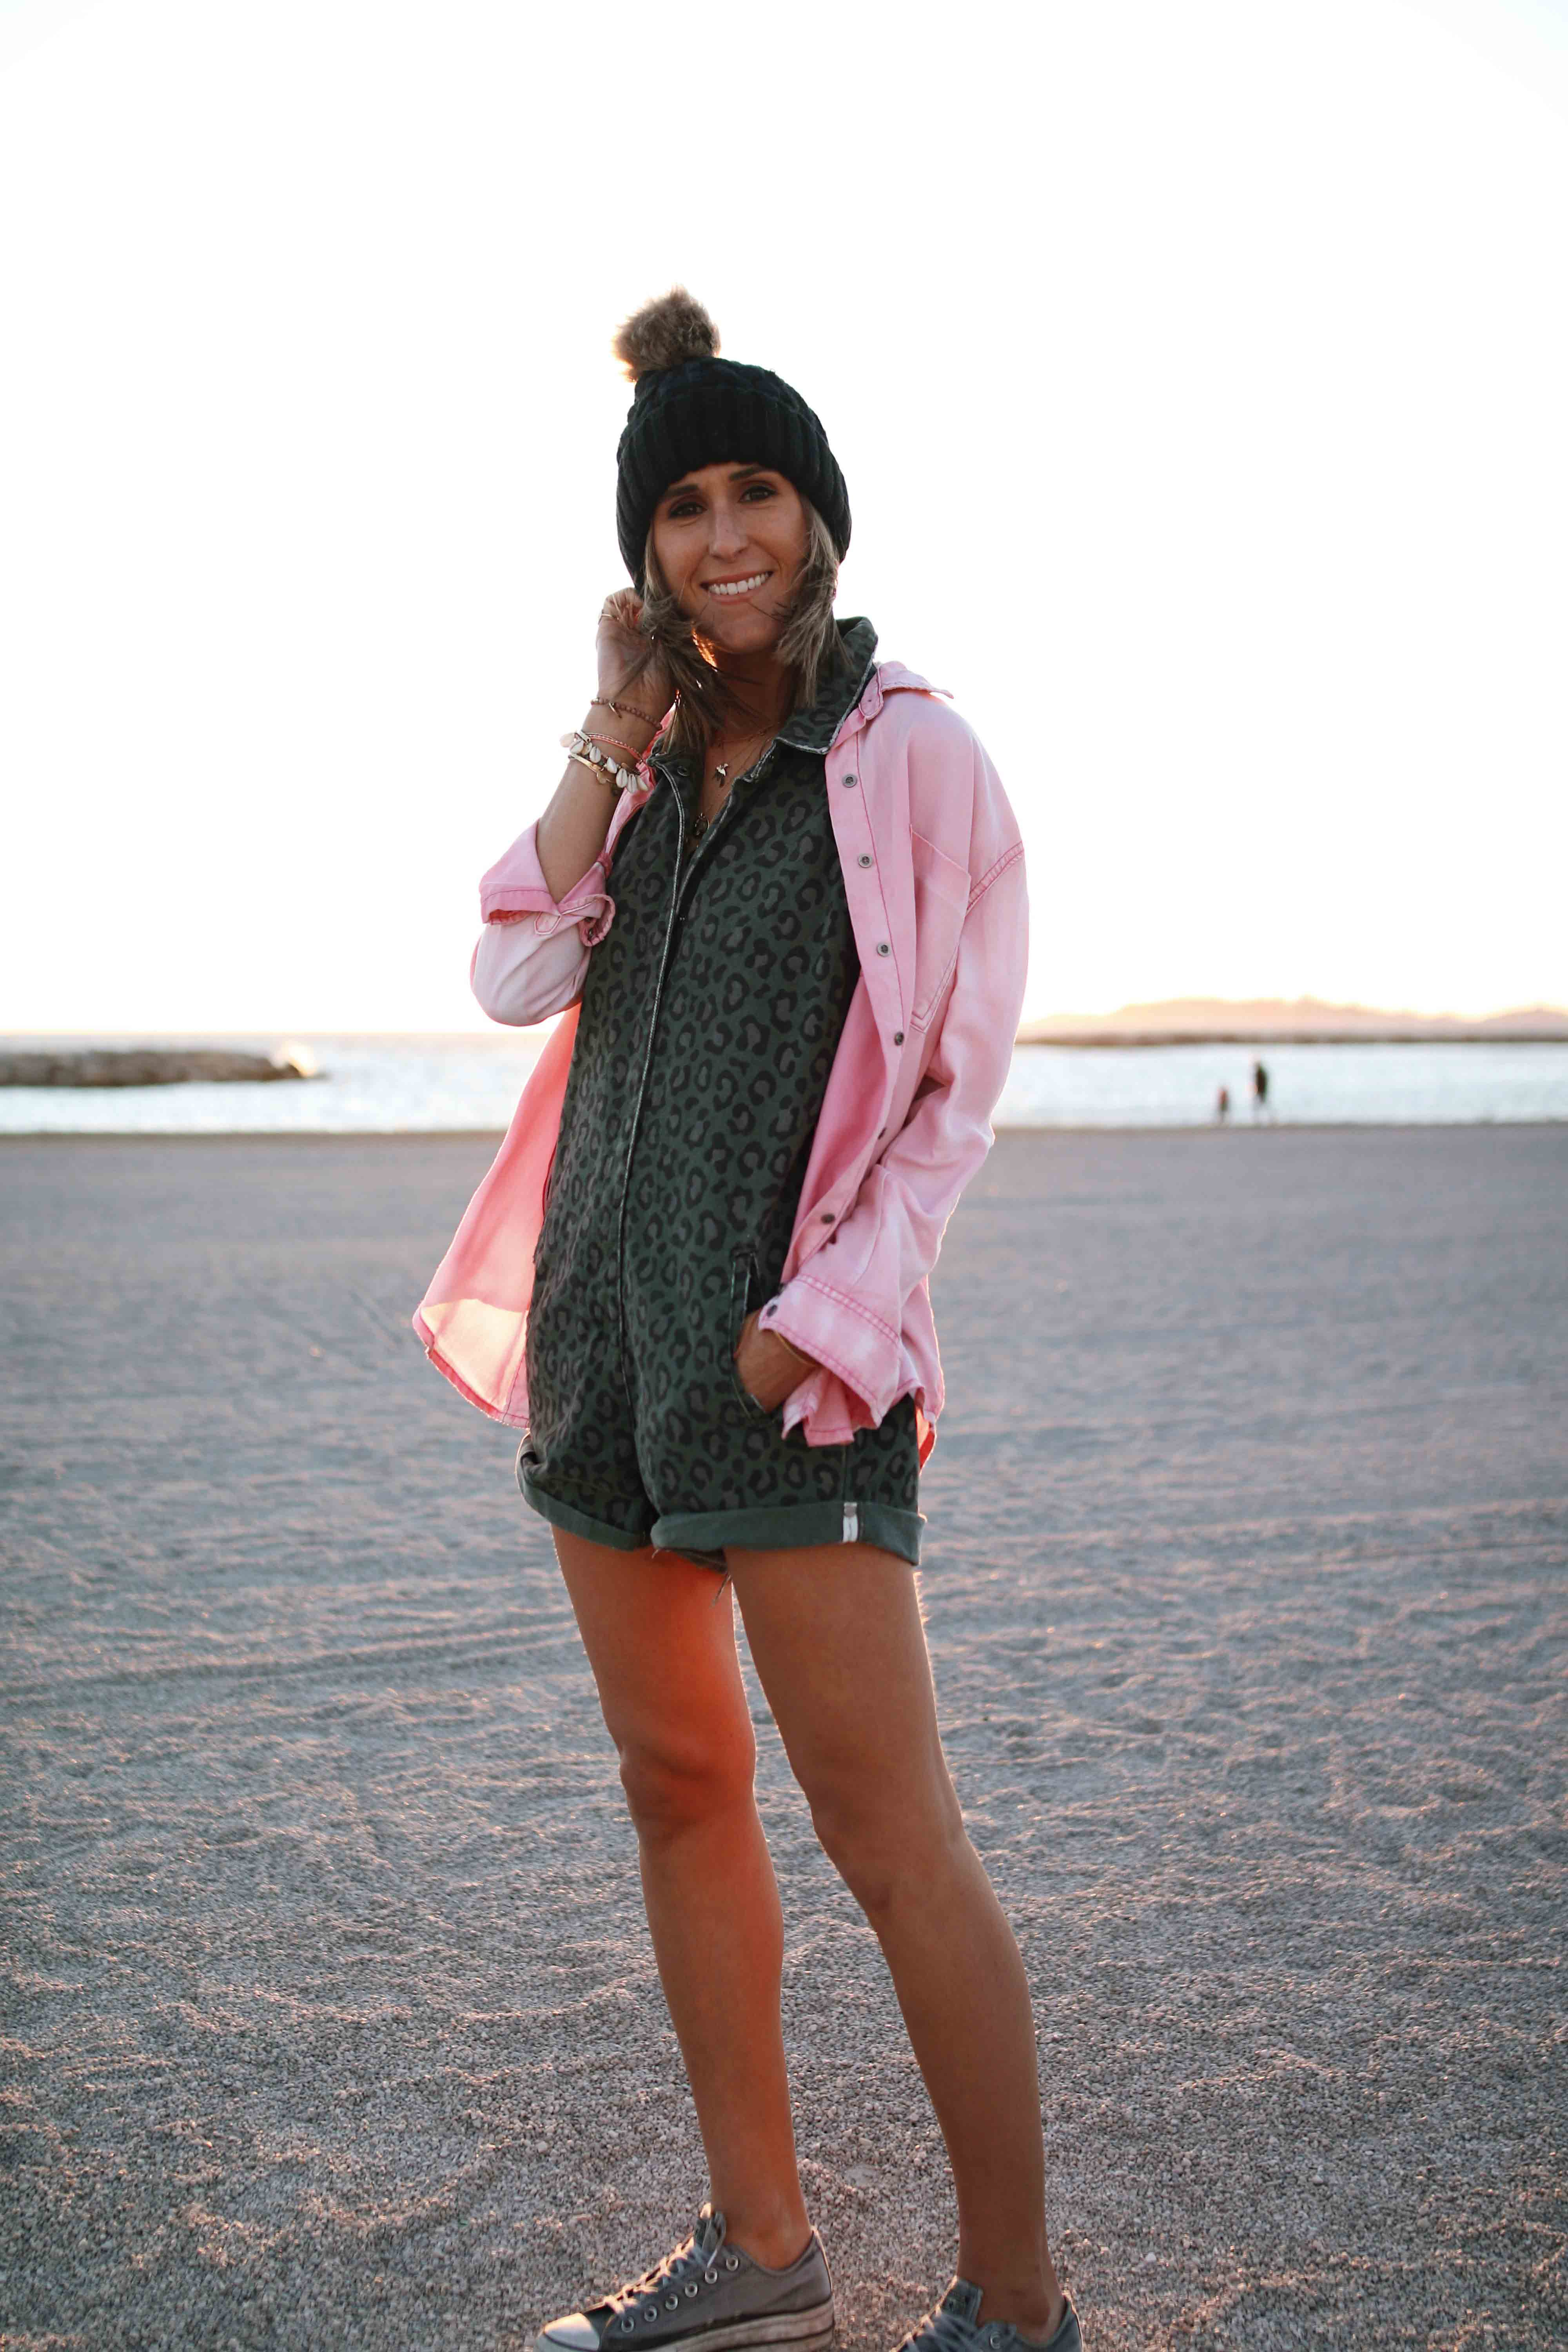 @chon.and.chon www.chonandchon.com jumpsuit one teaspoon, denim jumpsuit, pink jacket, one teaspoon outfit, casual style, casual look